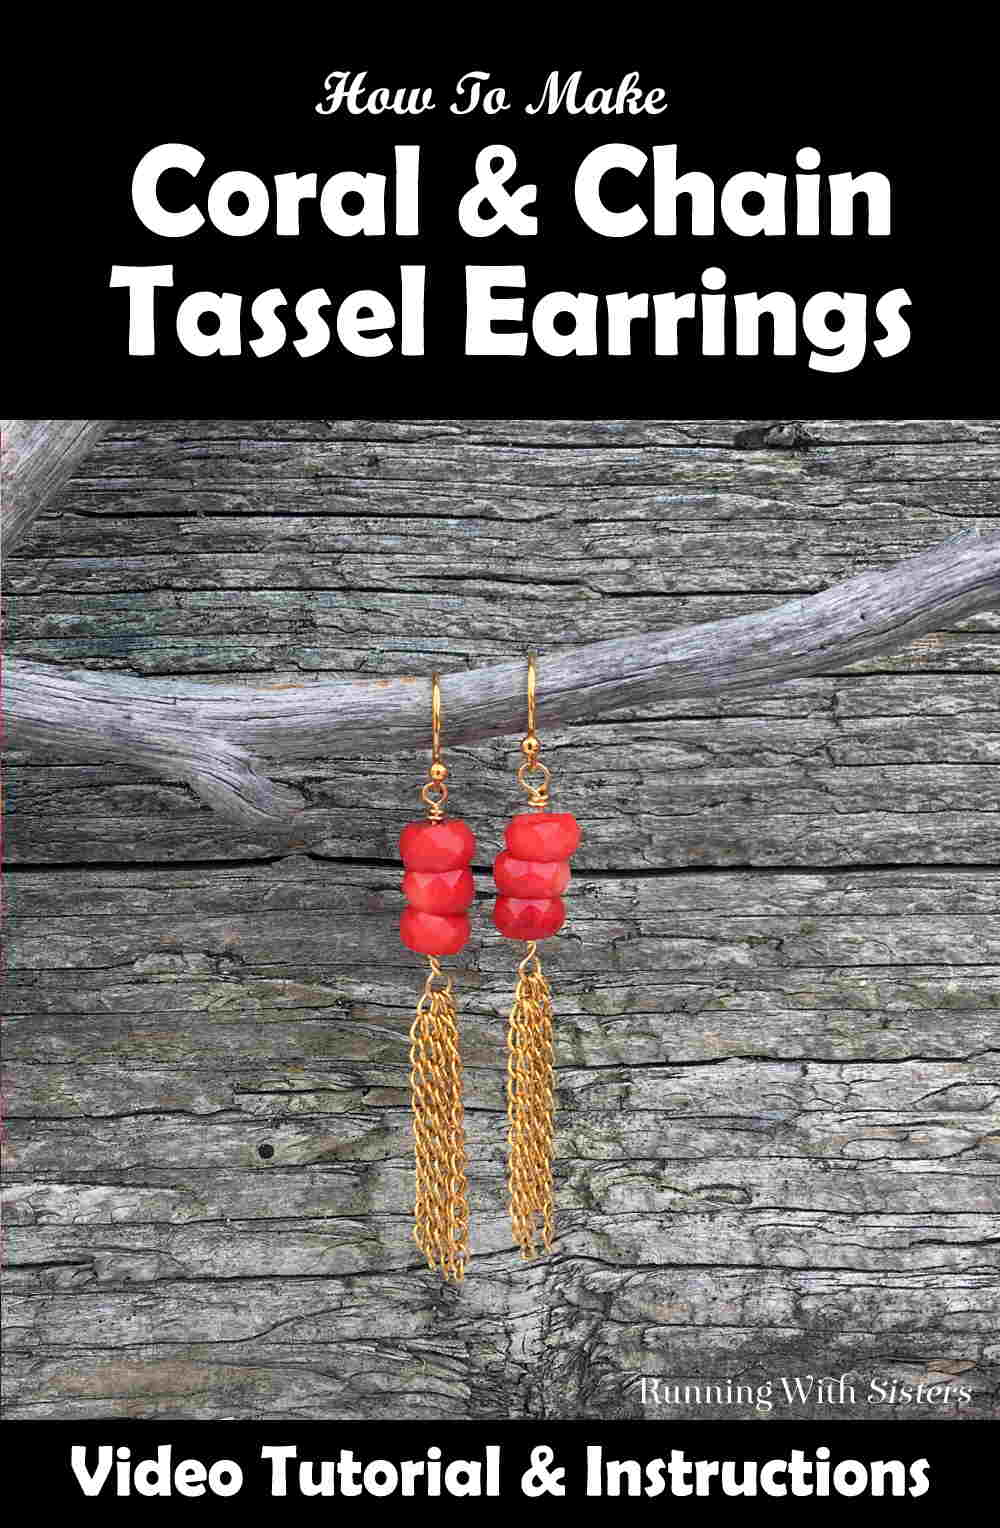 Make a pair of pretty Coral Chain Tassel Earrings. We'll show you how to make a chain tassel and attach it to the coral beads. Video included!